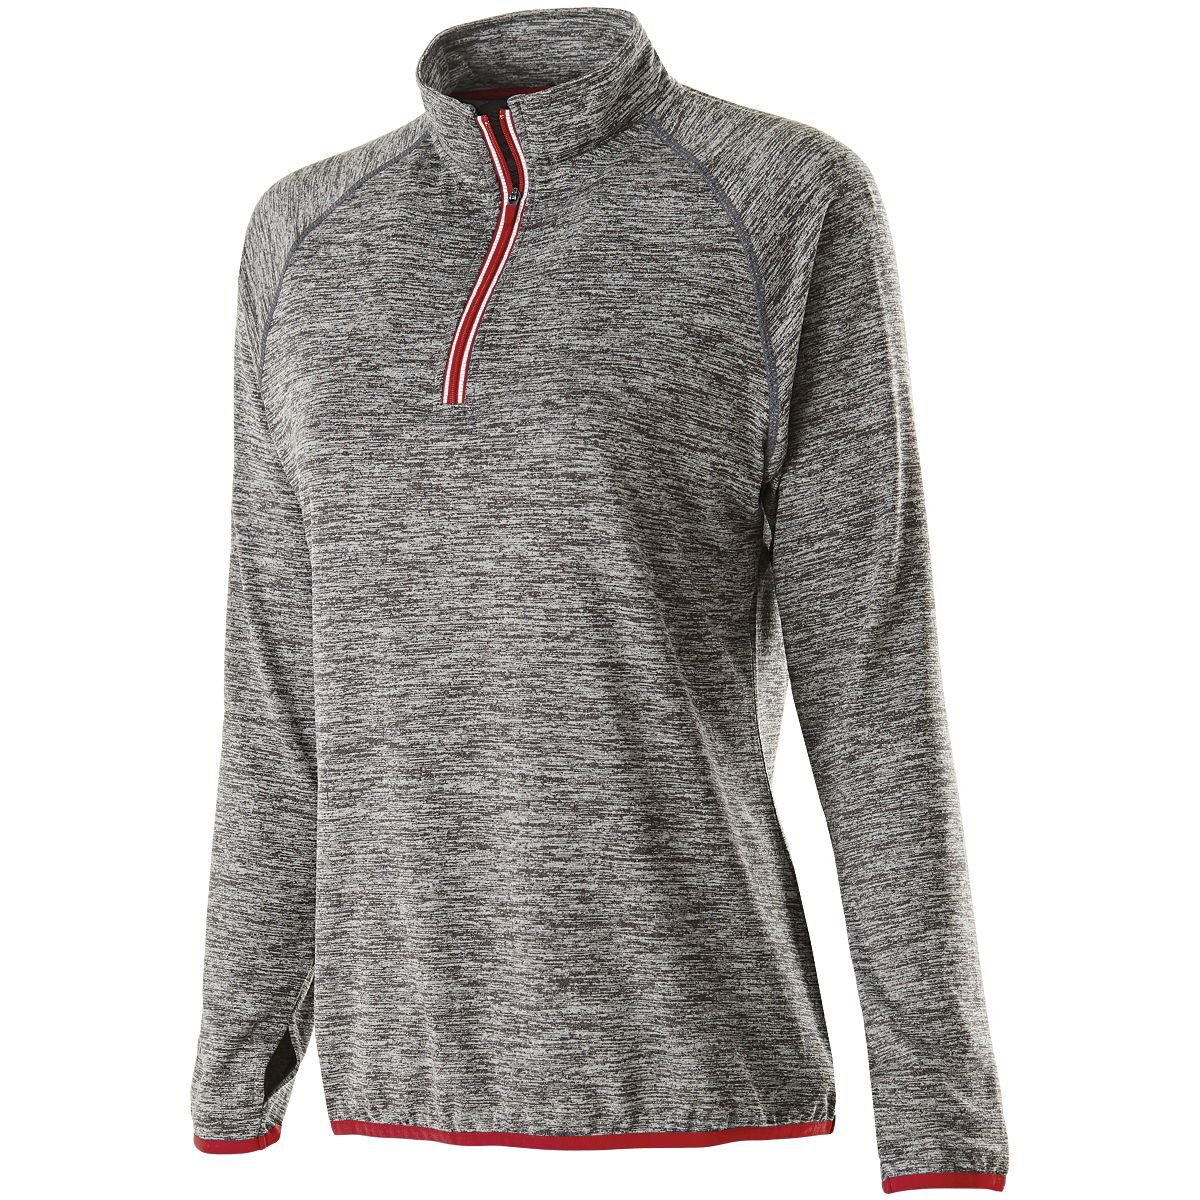 Holloway Sportswear WOMEN'S FORCE TRAINING TOP Women's XS Carbon Heather/Scarlet by Holloway